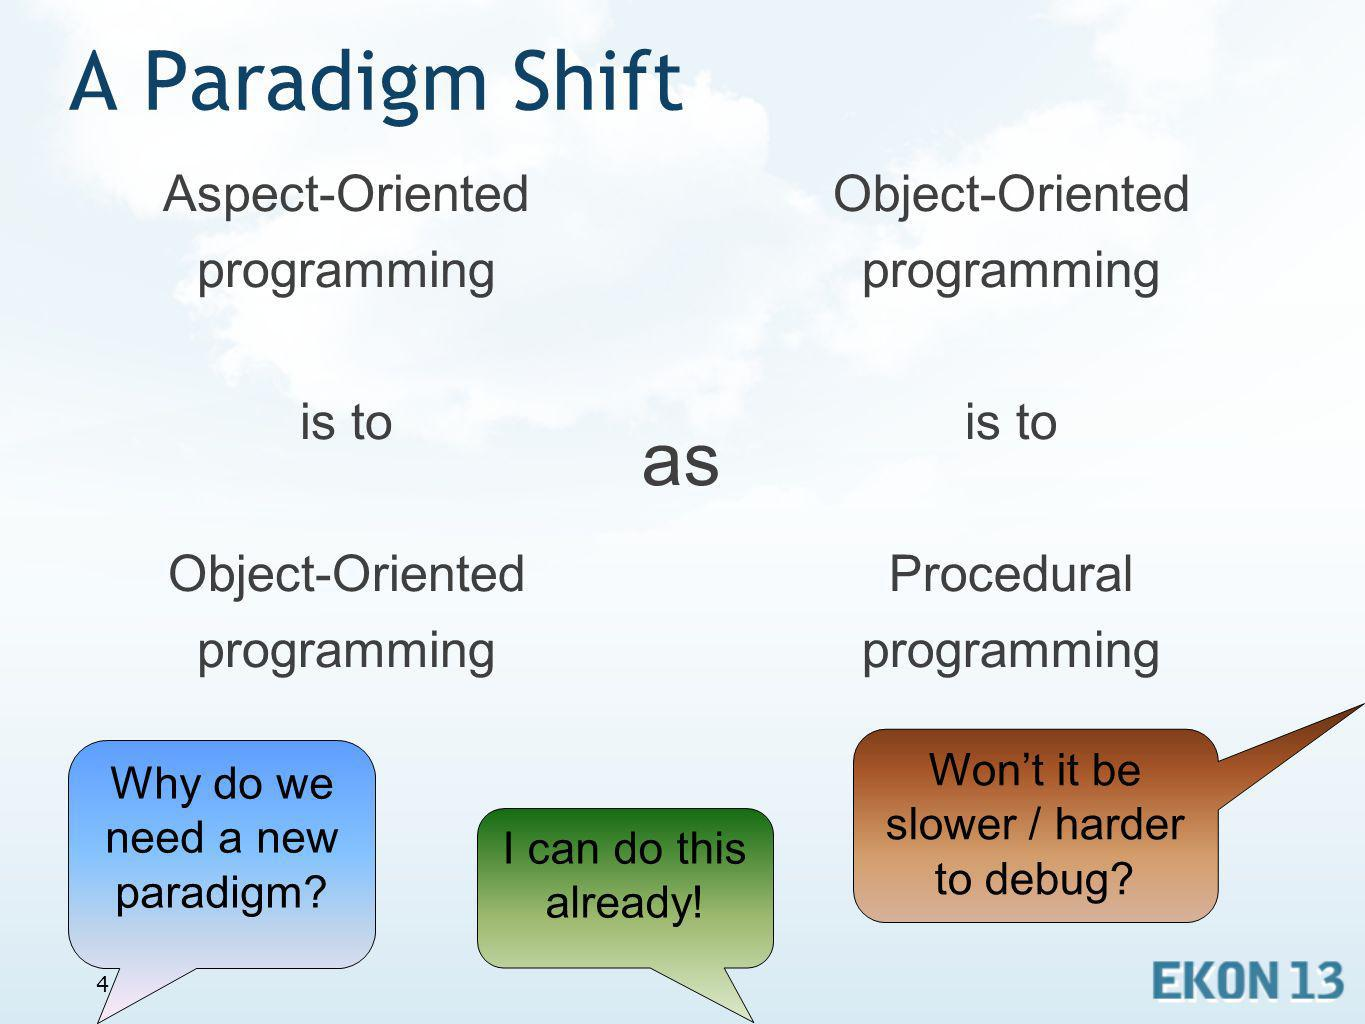 A Paradigm Shift Aspect-Oriented programming is to Object-Oriented programming.